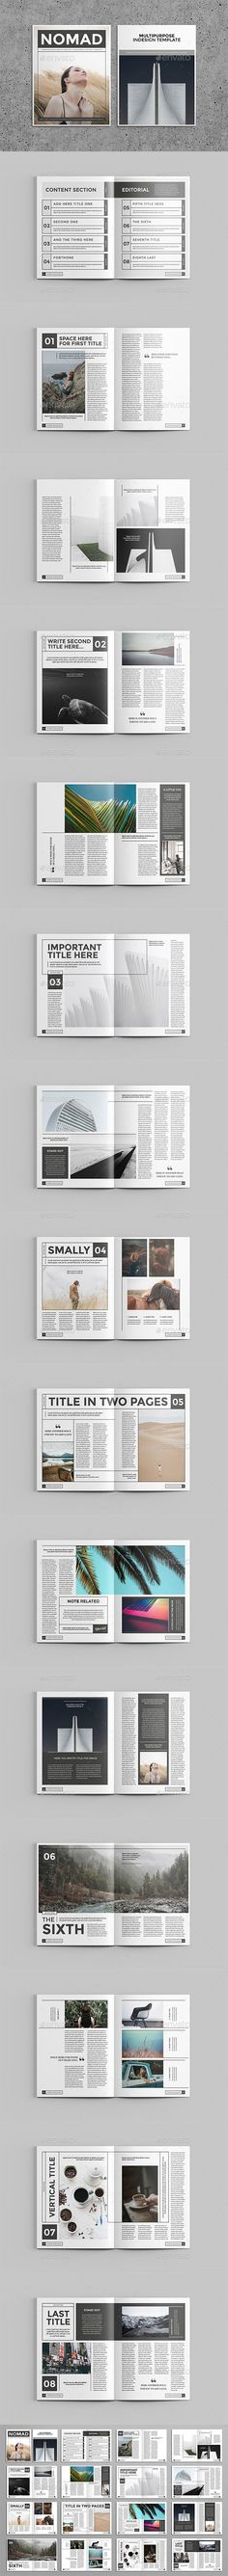 Nomad Magazine Template — InDesign INDD #minimal #digital • Available here ➝ https://graphicriver.net/item/nomad-magazine-template/20598779?ref=pxcr